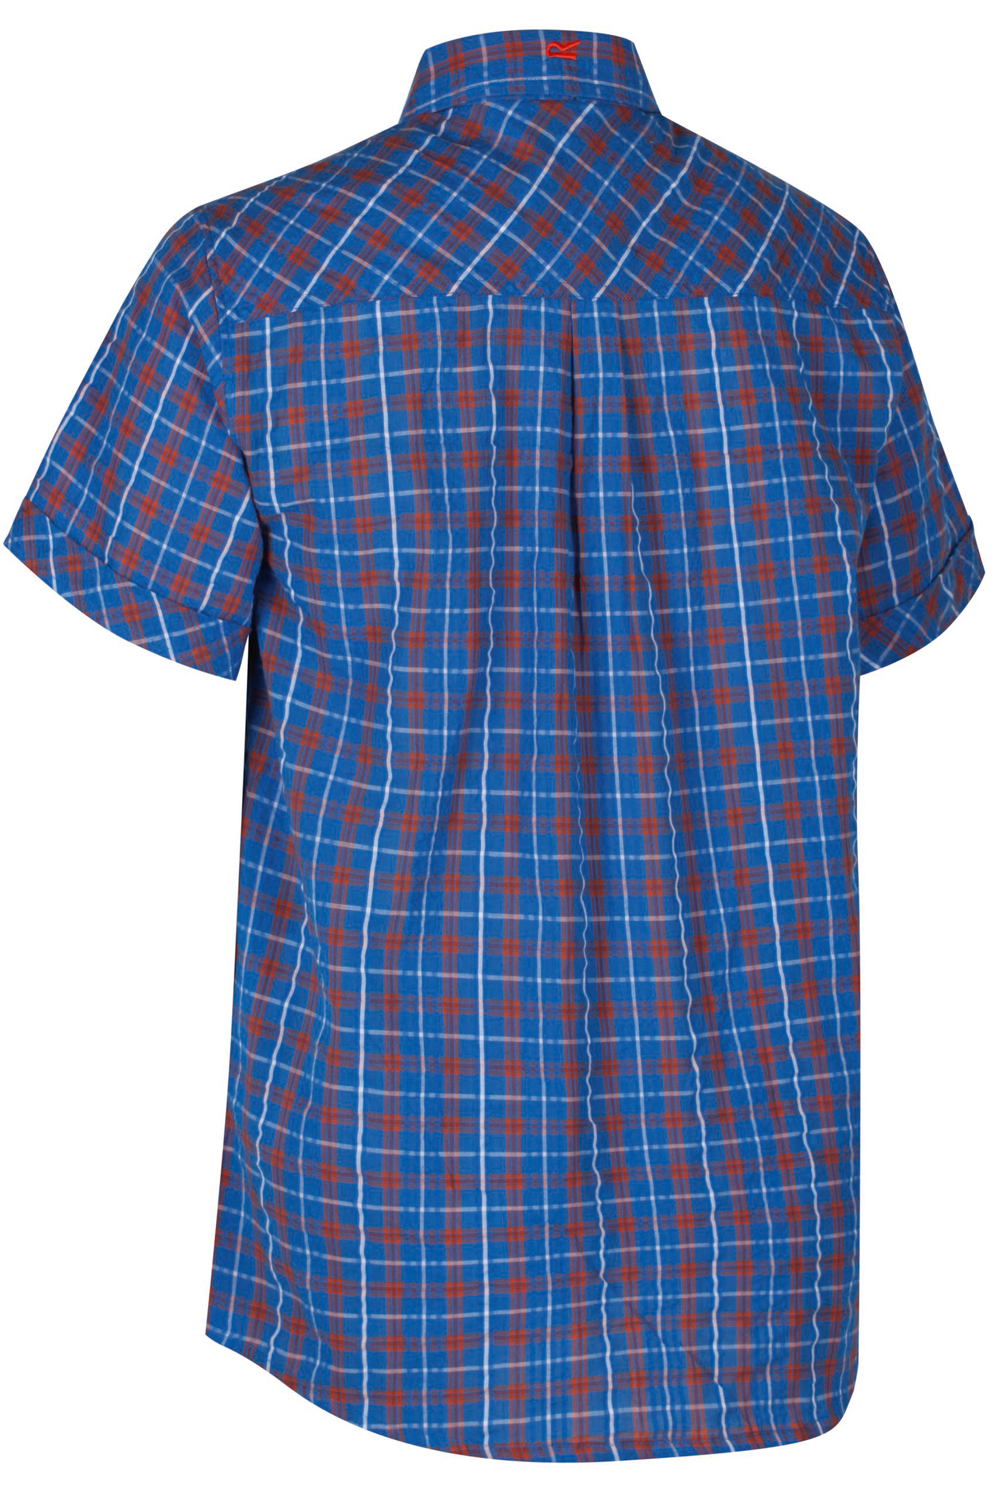 Regatta-Mens-Deakin-II-Coolweave-Cotton-Short-Sleeved-Summer-Check-Shirt-RRP-50 thumbnail 27